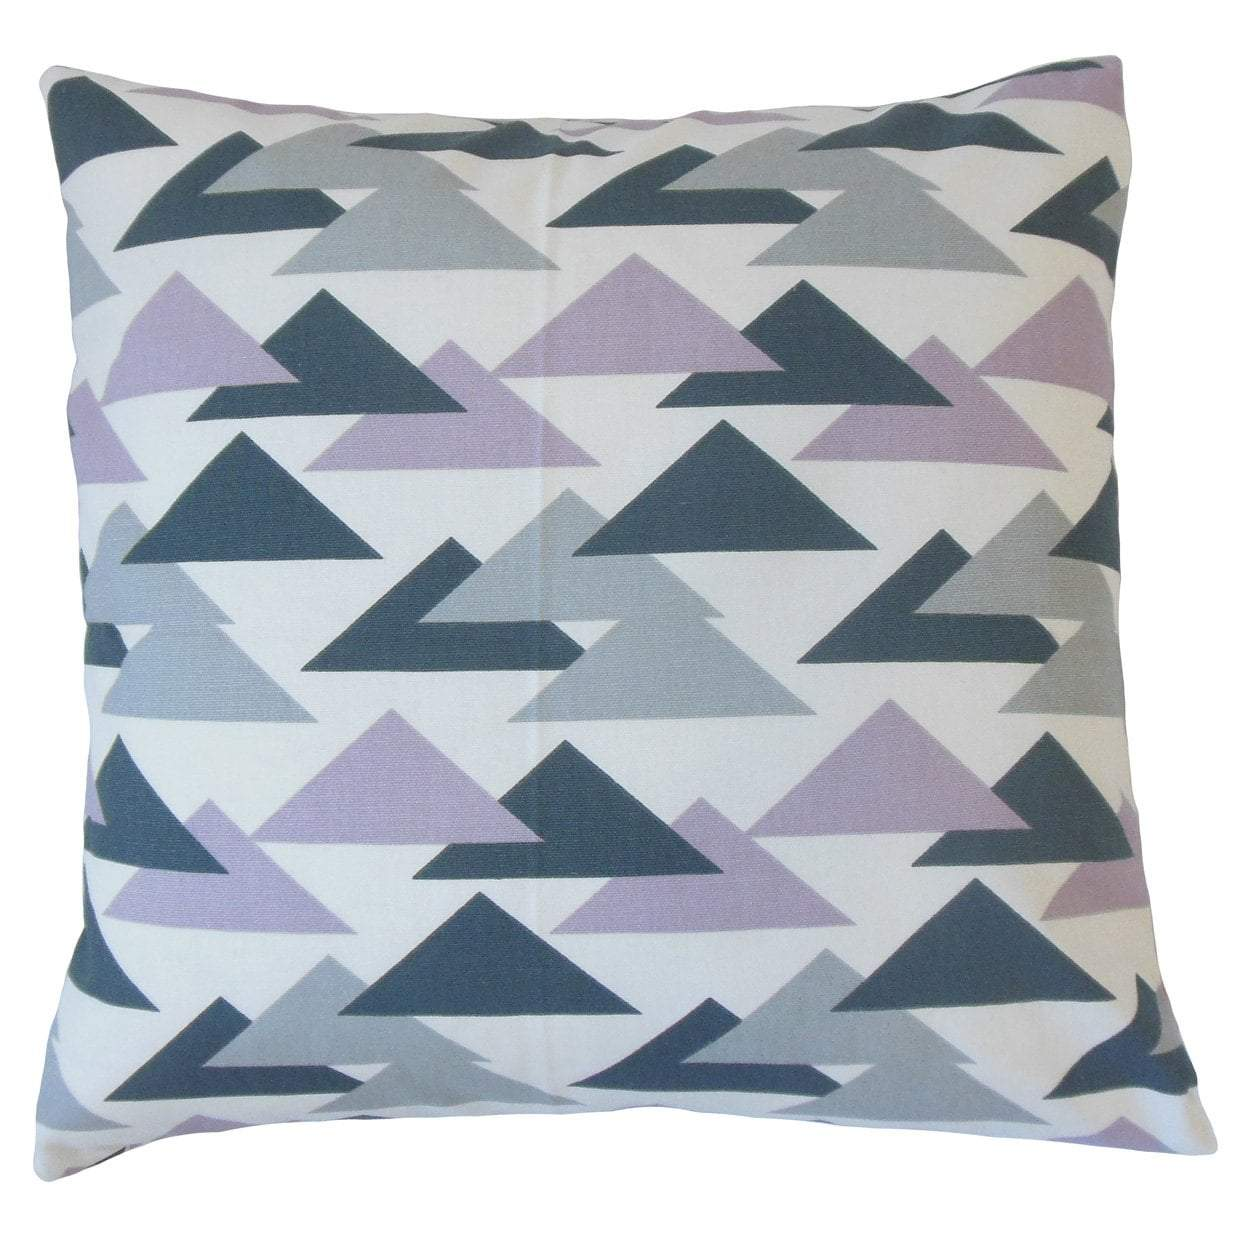 Gamache Throw Pillow Cover